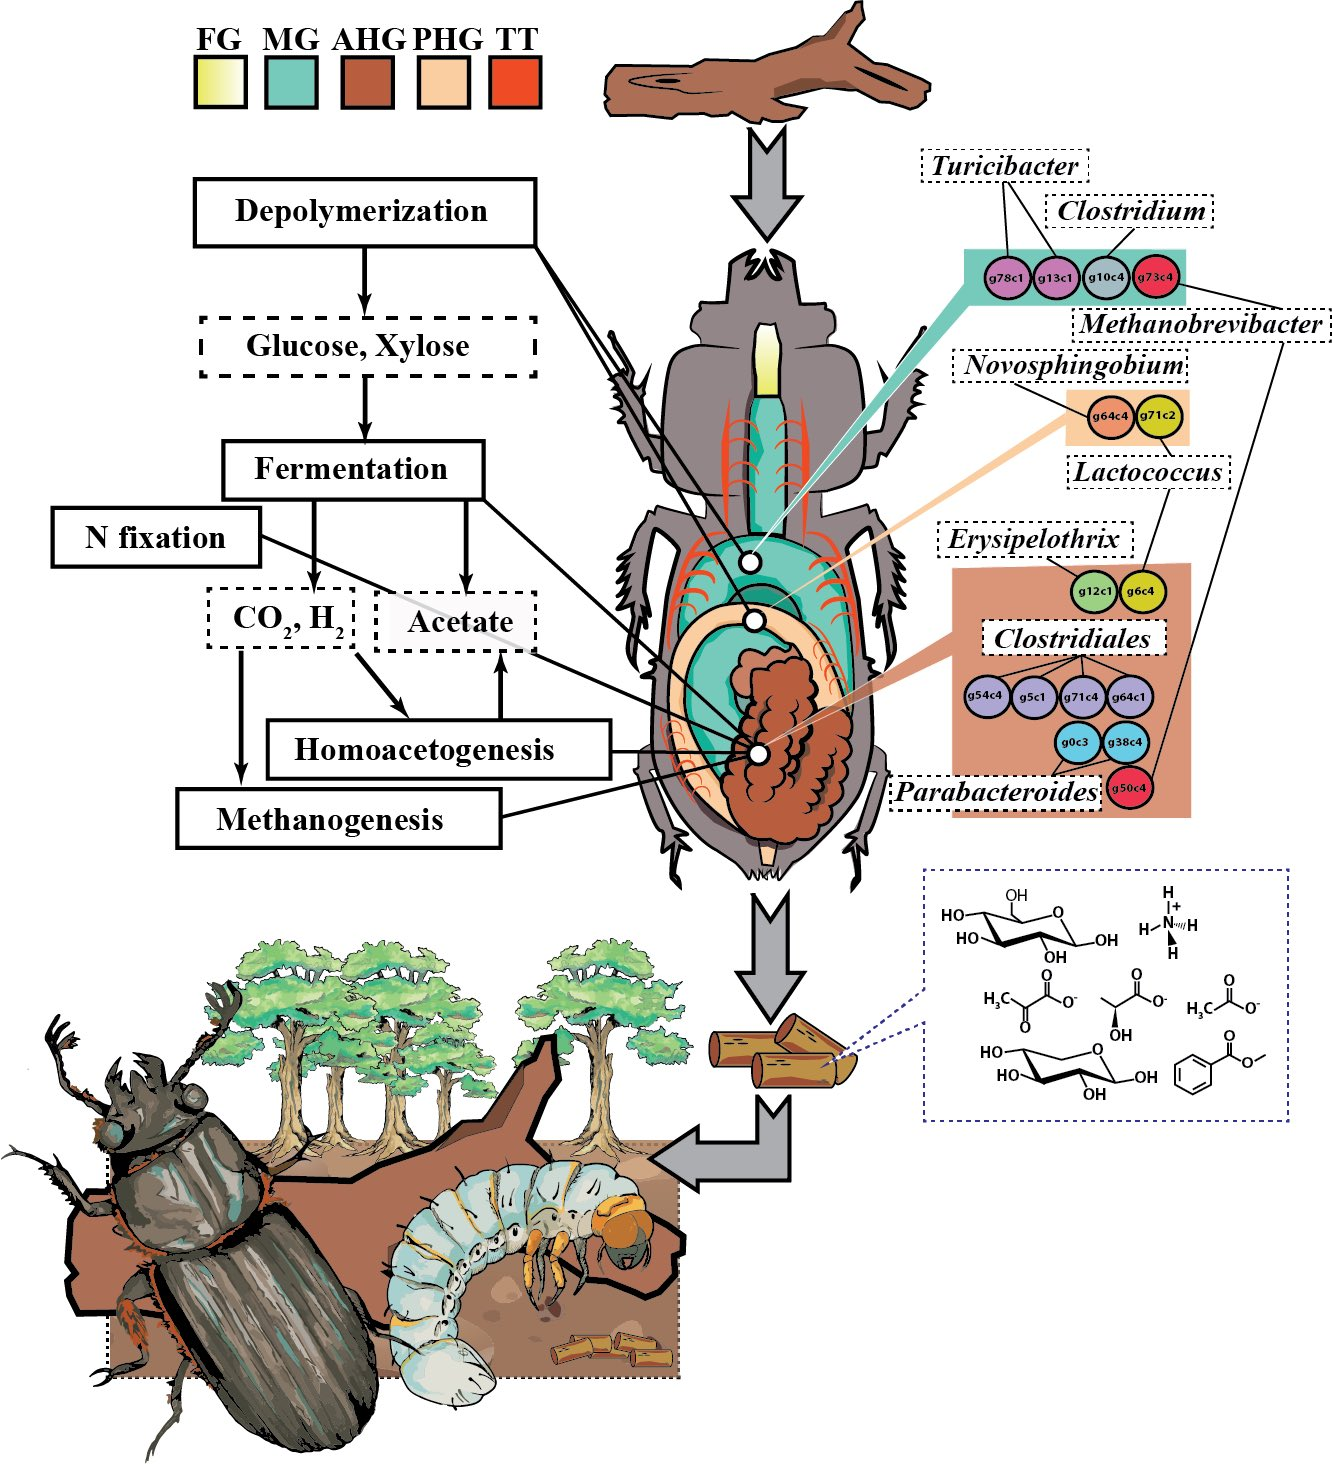 hight resolution of a diagram of the passalid beetle s compartmentalized gut and the distribution of metabolic processes and